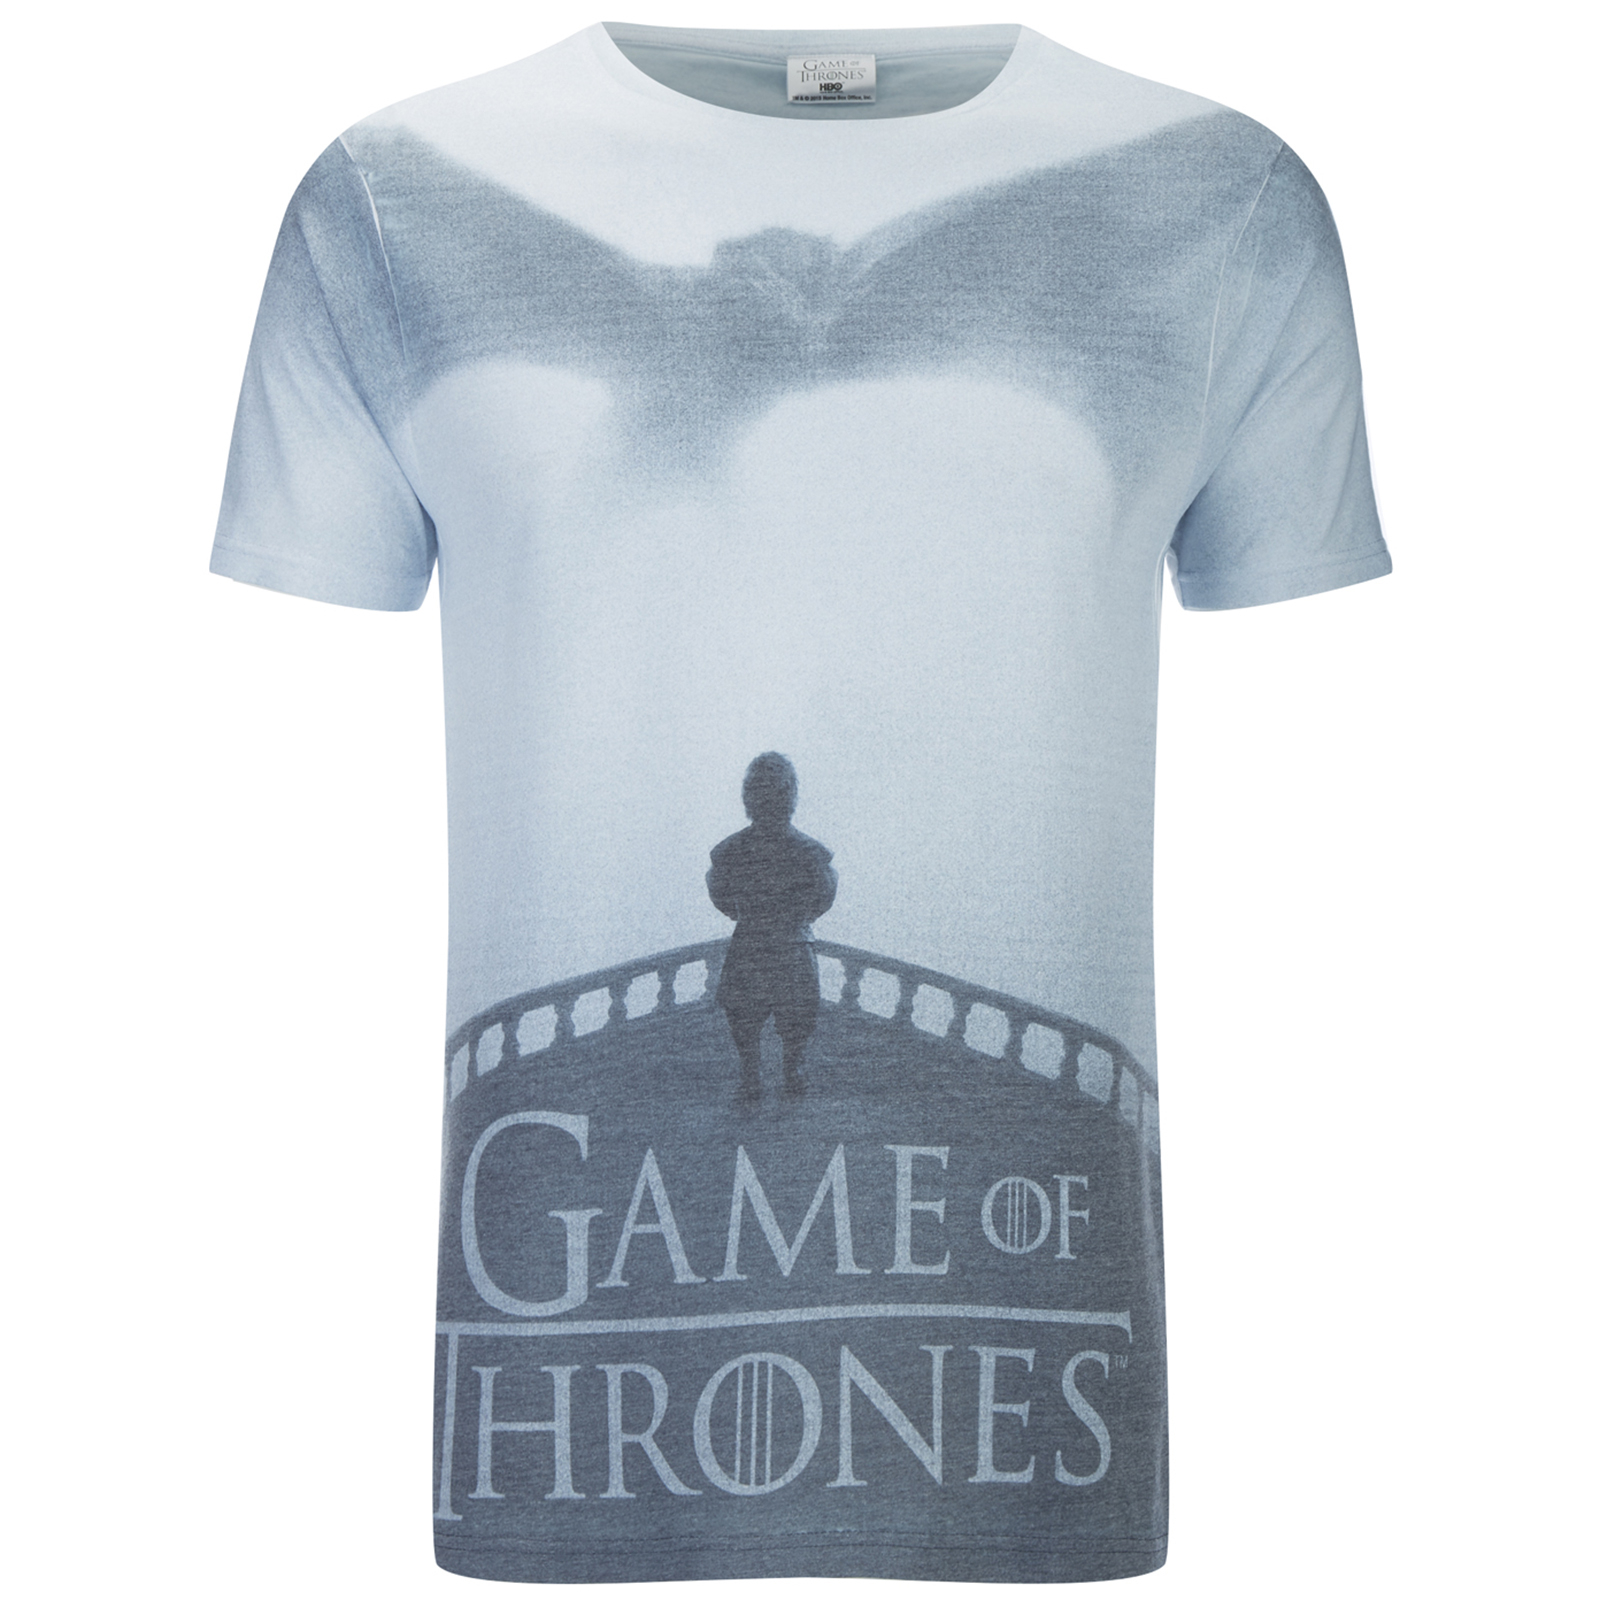 T-Shirt Homme Game of Thrones Dragon Tyrion - Blanc